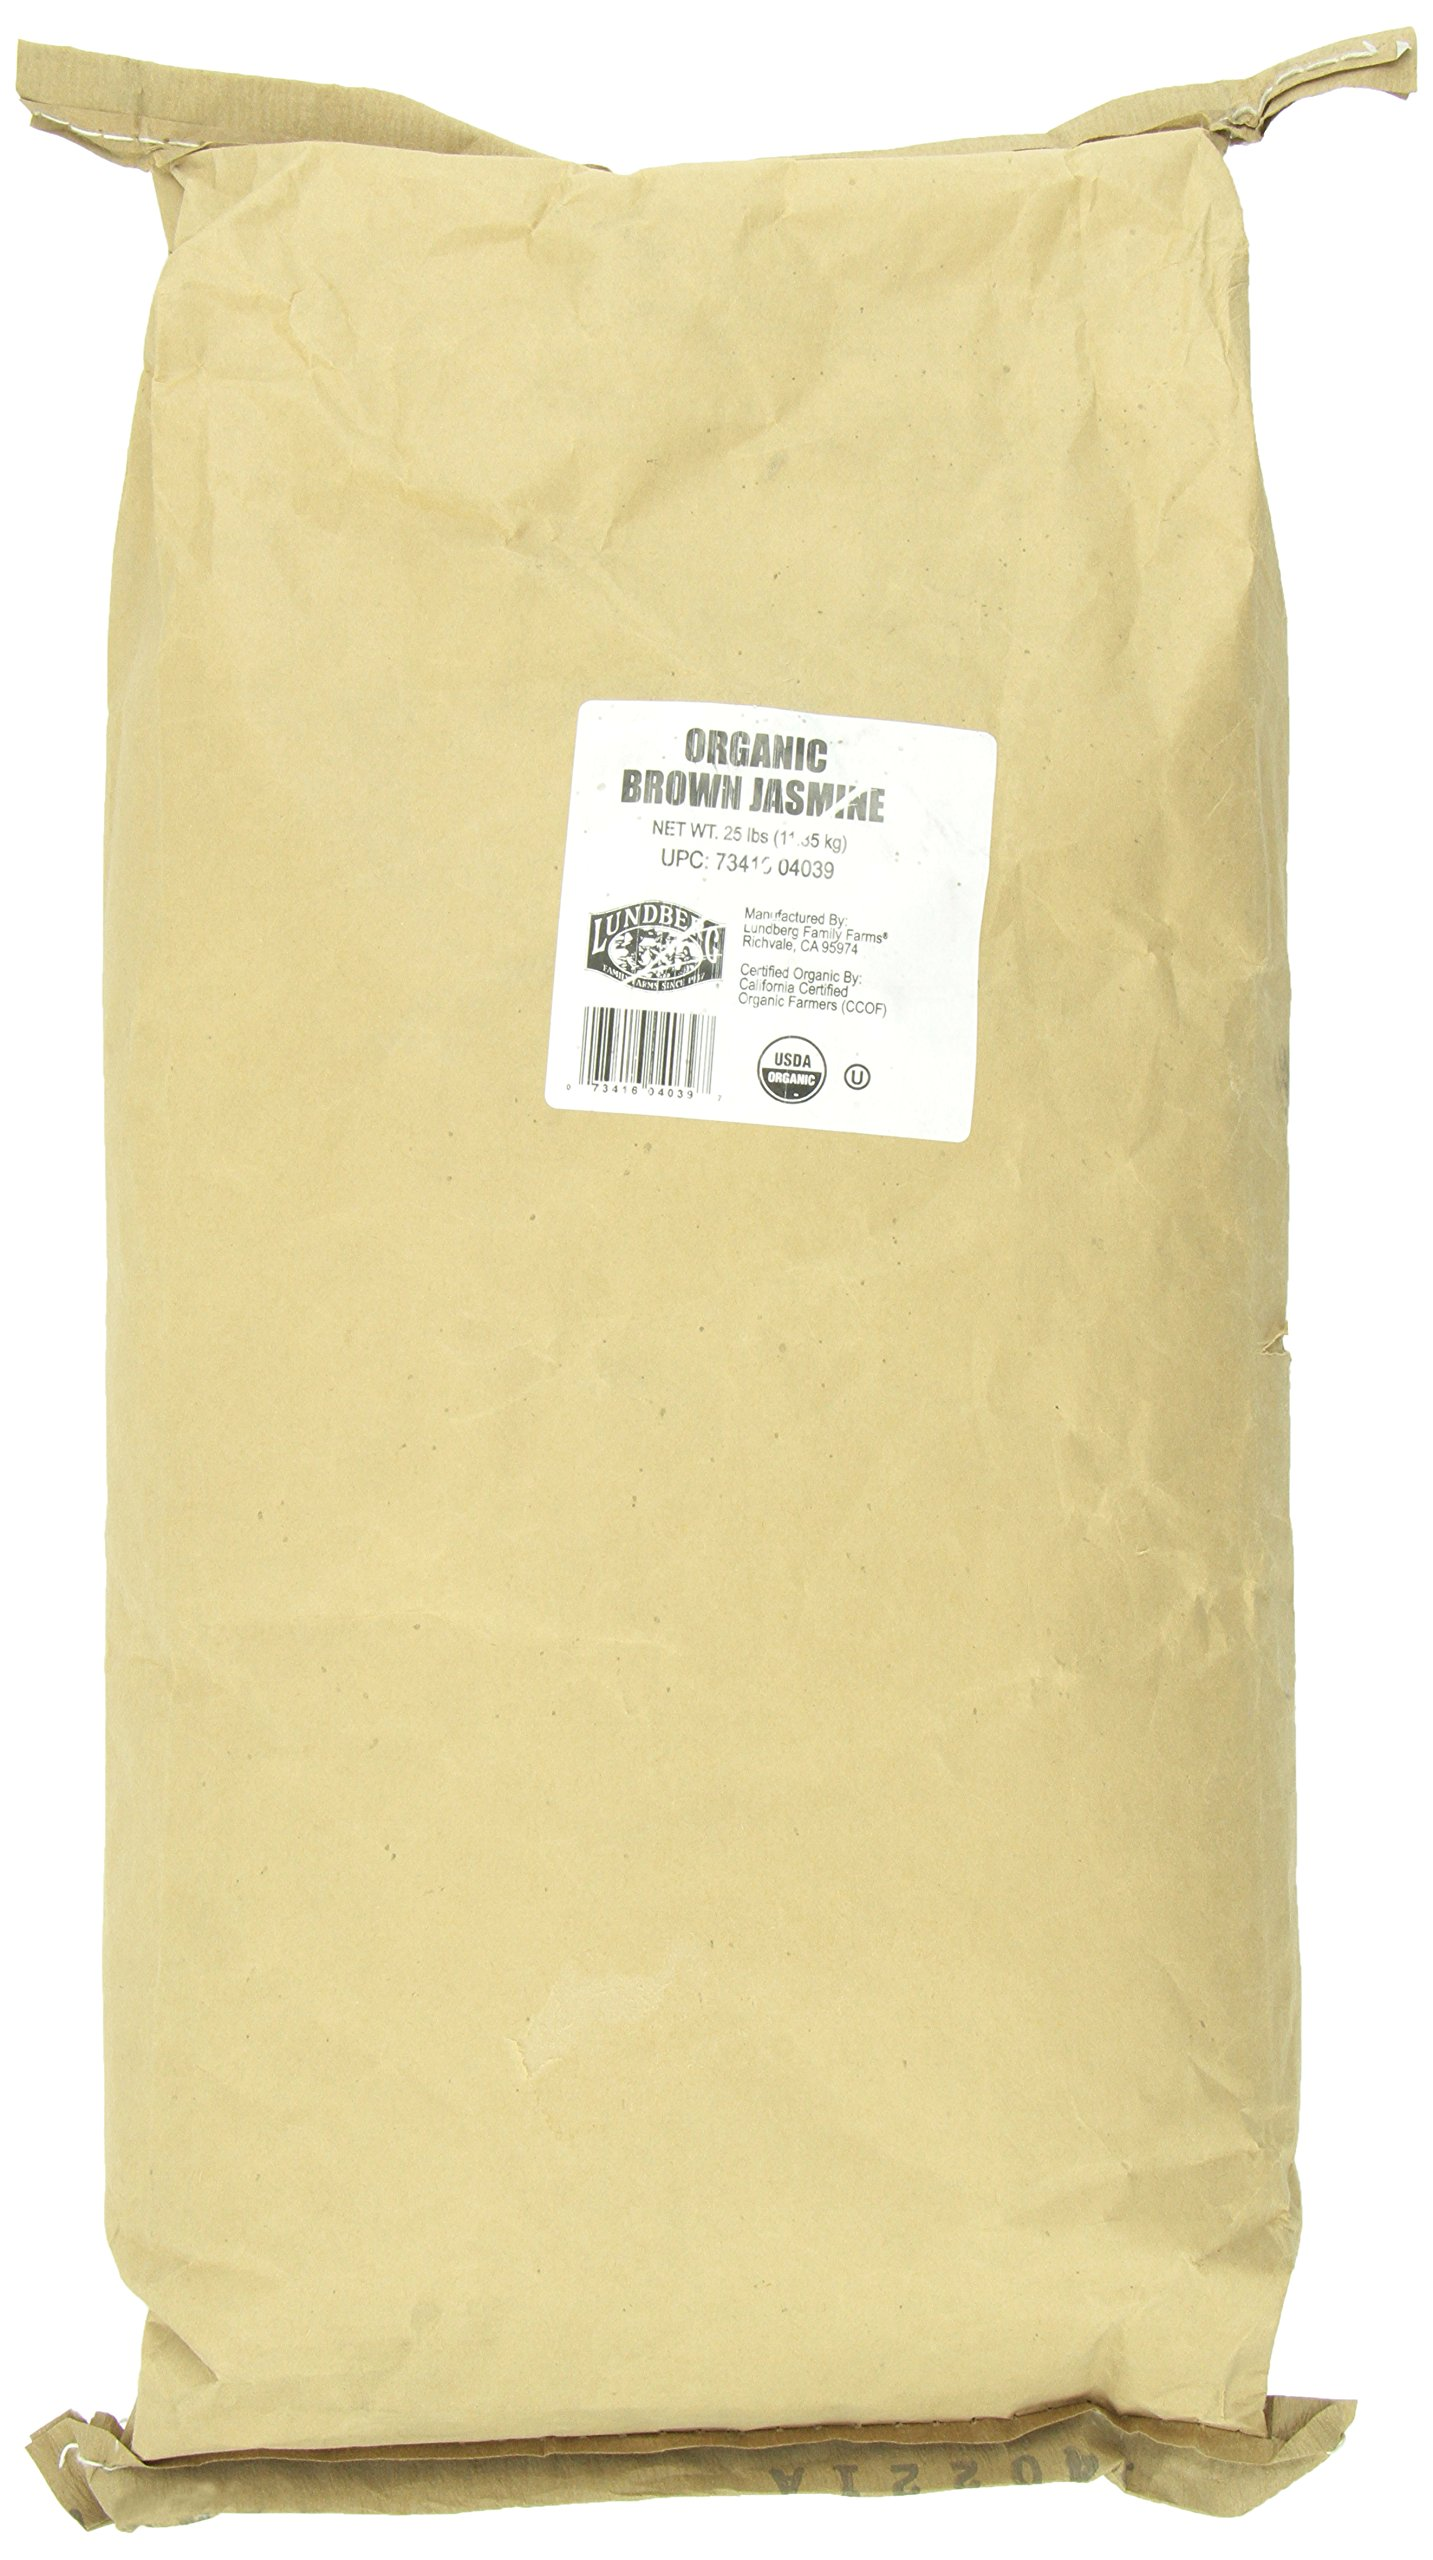 Lundberg Family Farms Organic California Brown Jasmine Rice, 25 Pounds (Packaging May Vary)